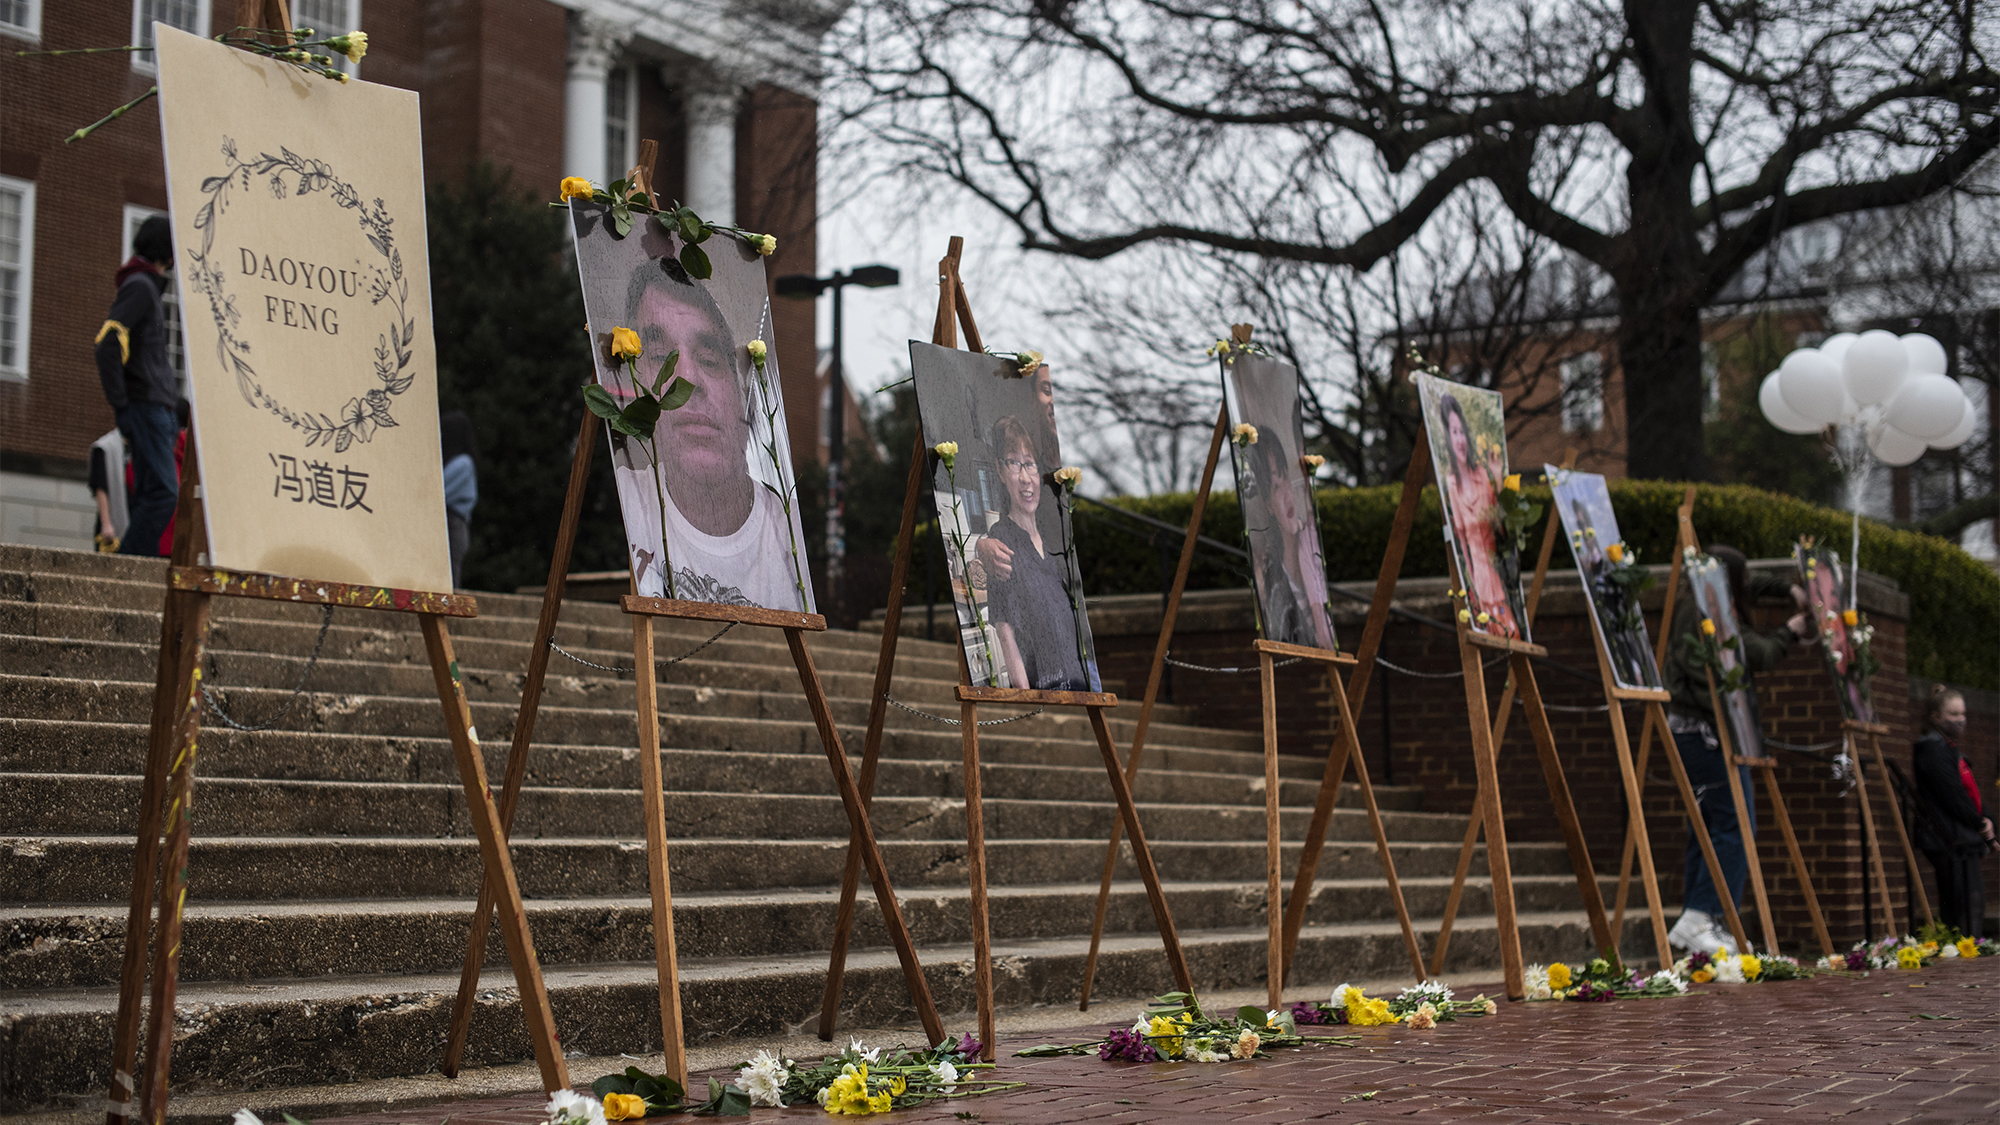 dbknews.com: After Atlanta shooting, UMD students hold vigil to heal and confront anti-Asian hate